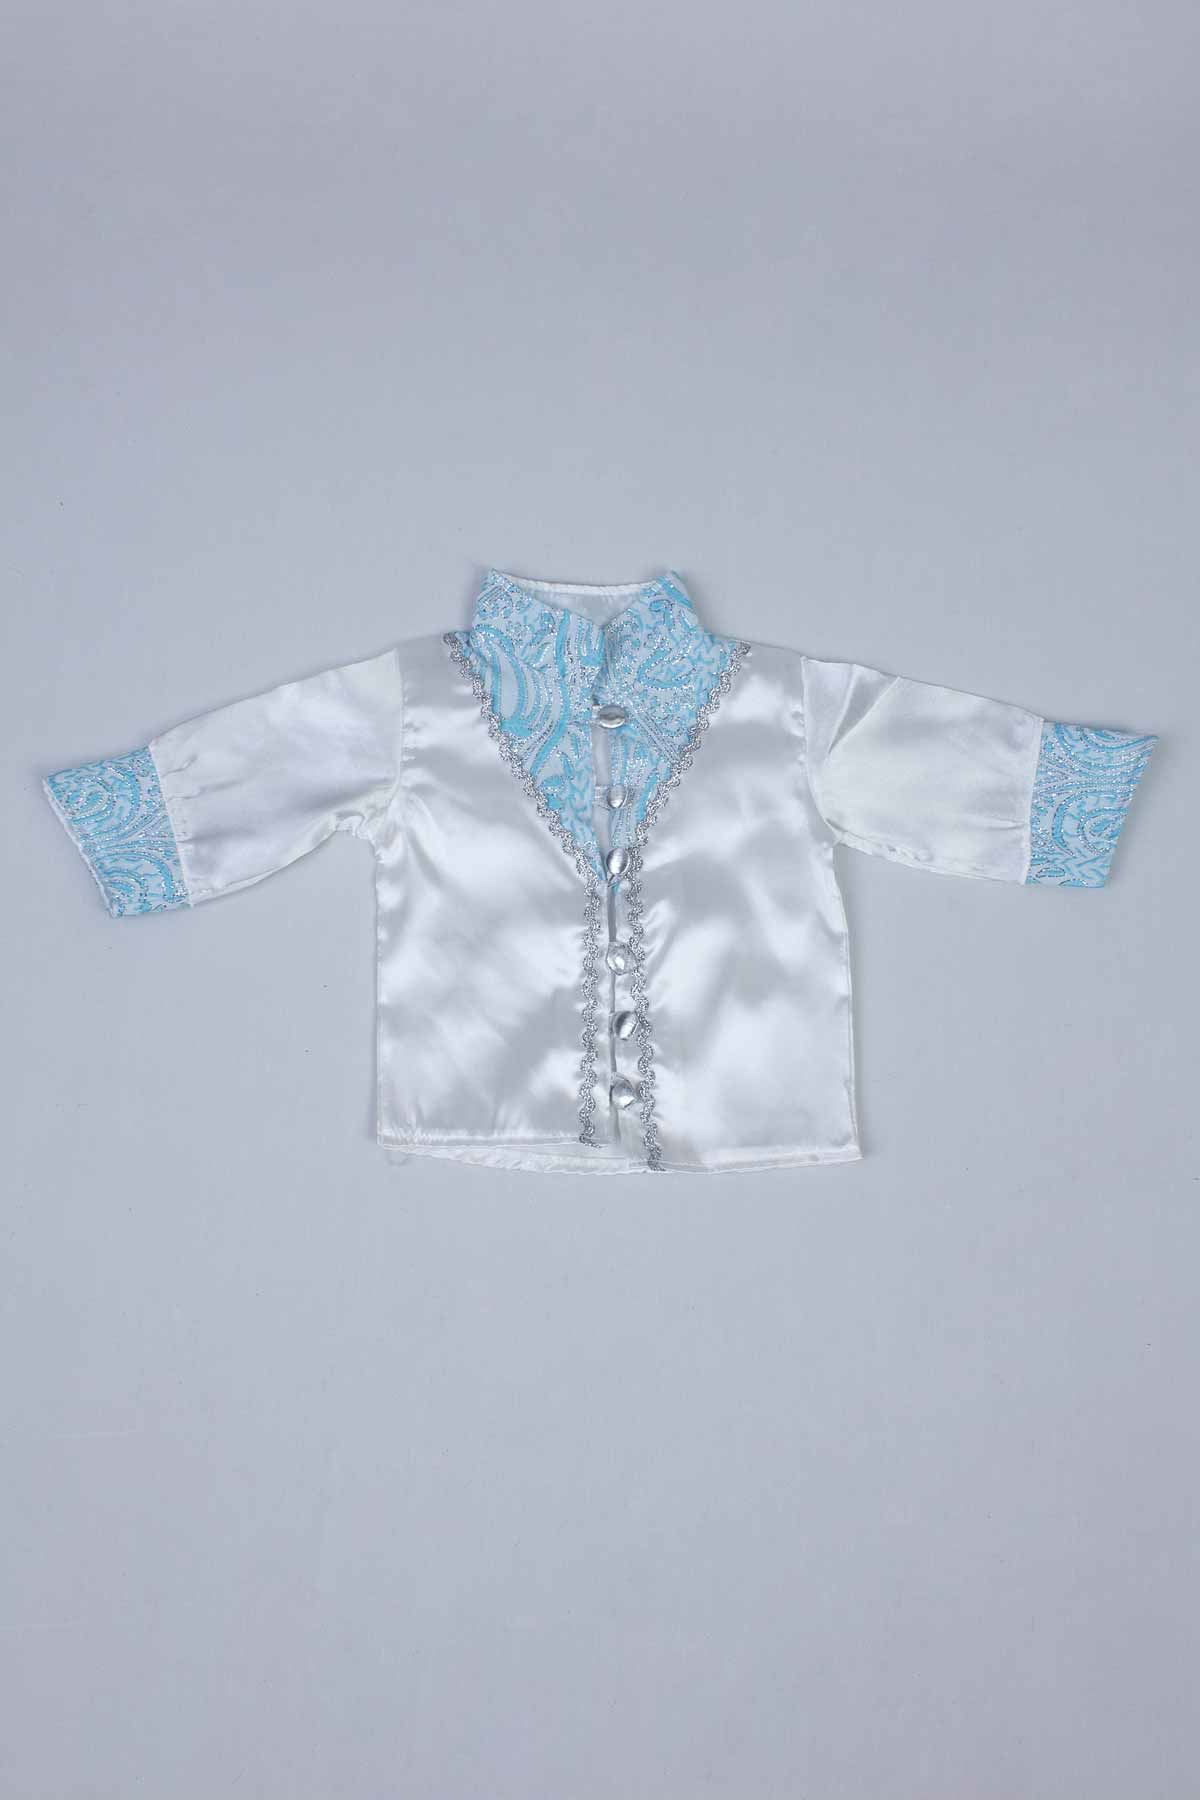 Male Baby Suit Gent Prince Ottoman Prince Gentleman Formal Boy Babies 5 Piece Set Boys Clothing Special Occasions Outfit Models